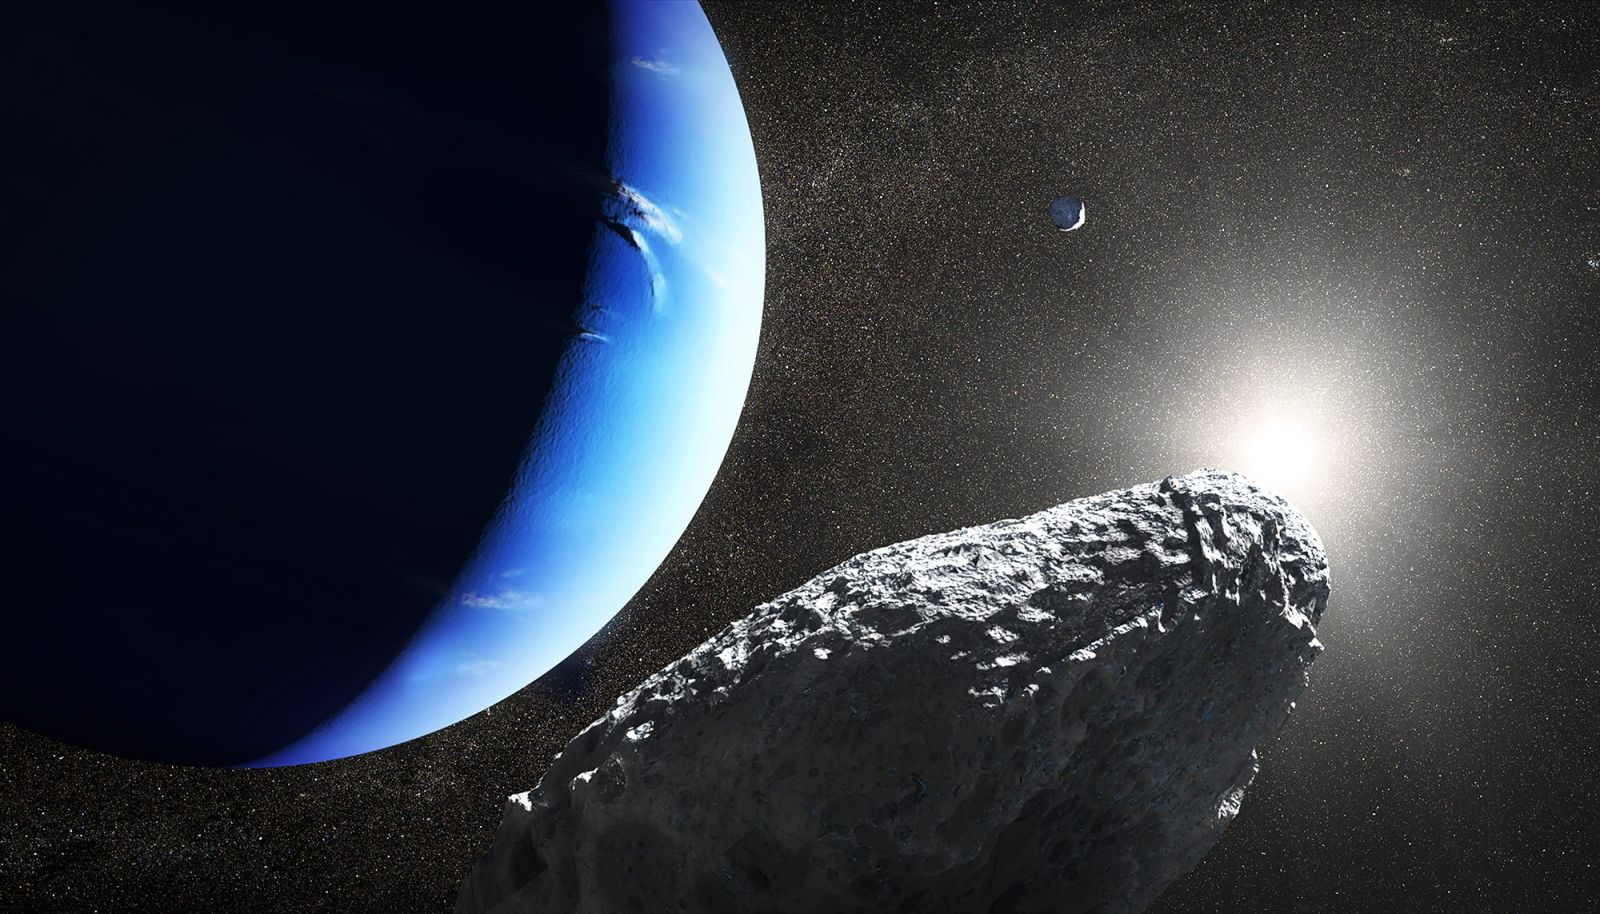 An illustration of Hippocamp orbiting Neptune. Image Credit: NASA/ESA/J. Olmsted (STScI)